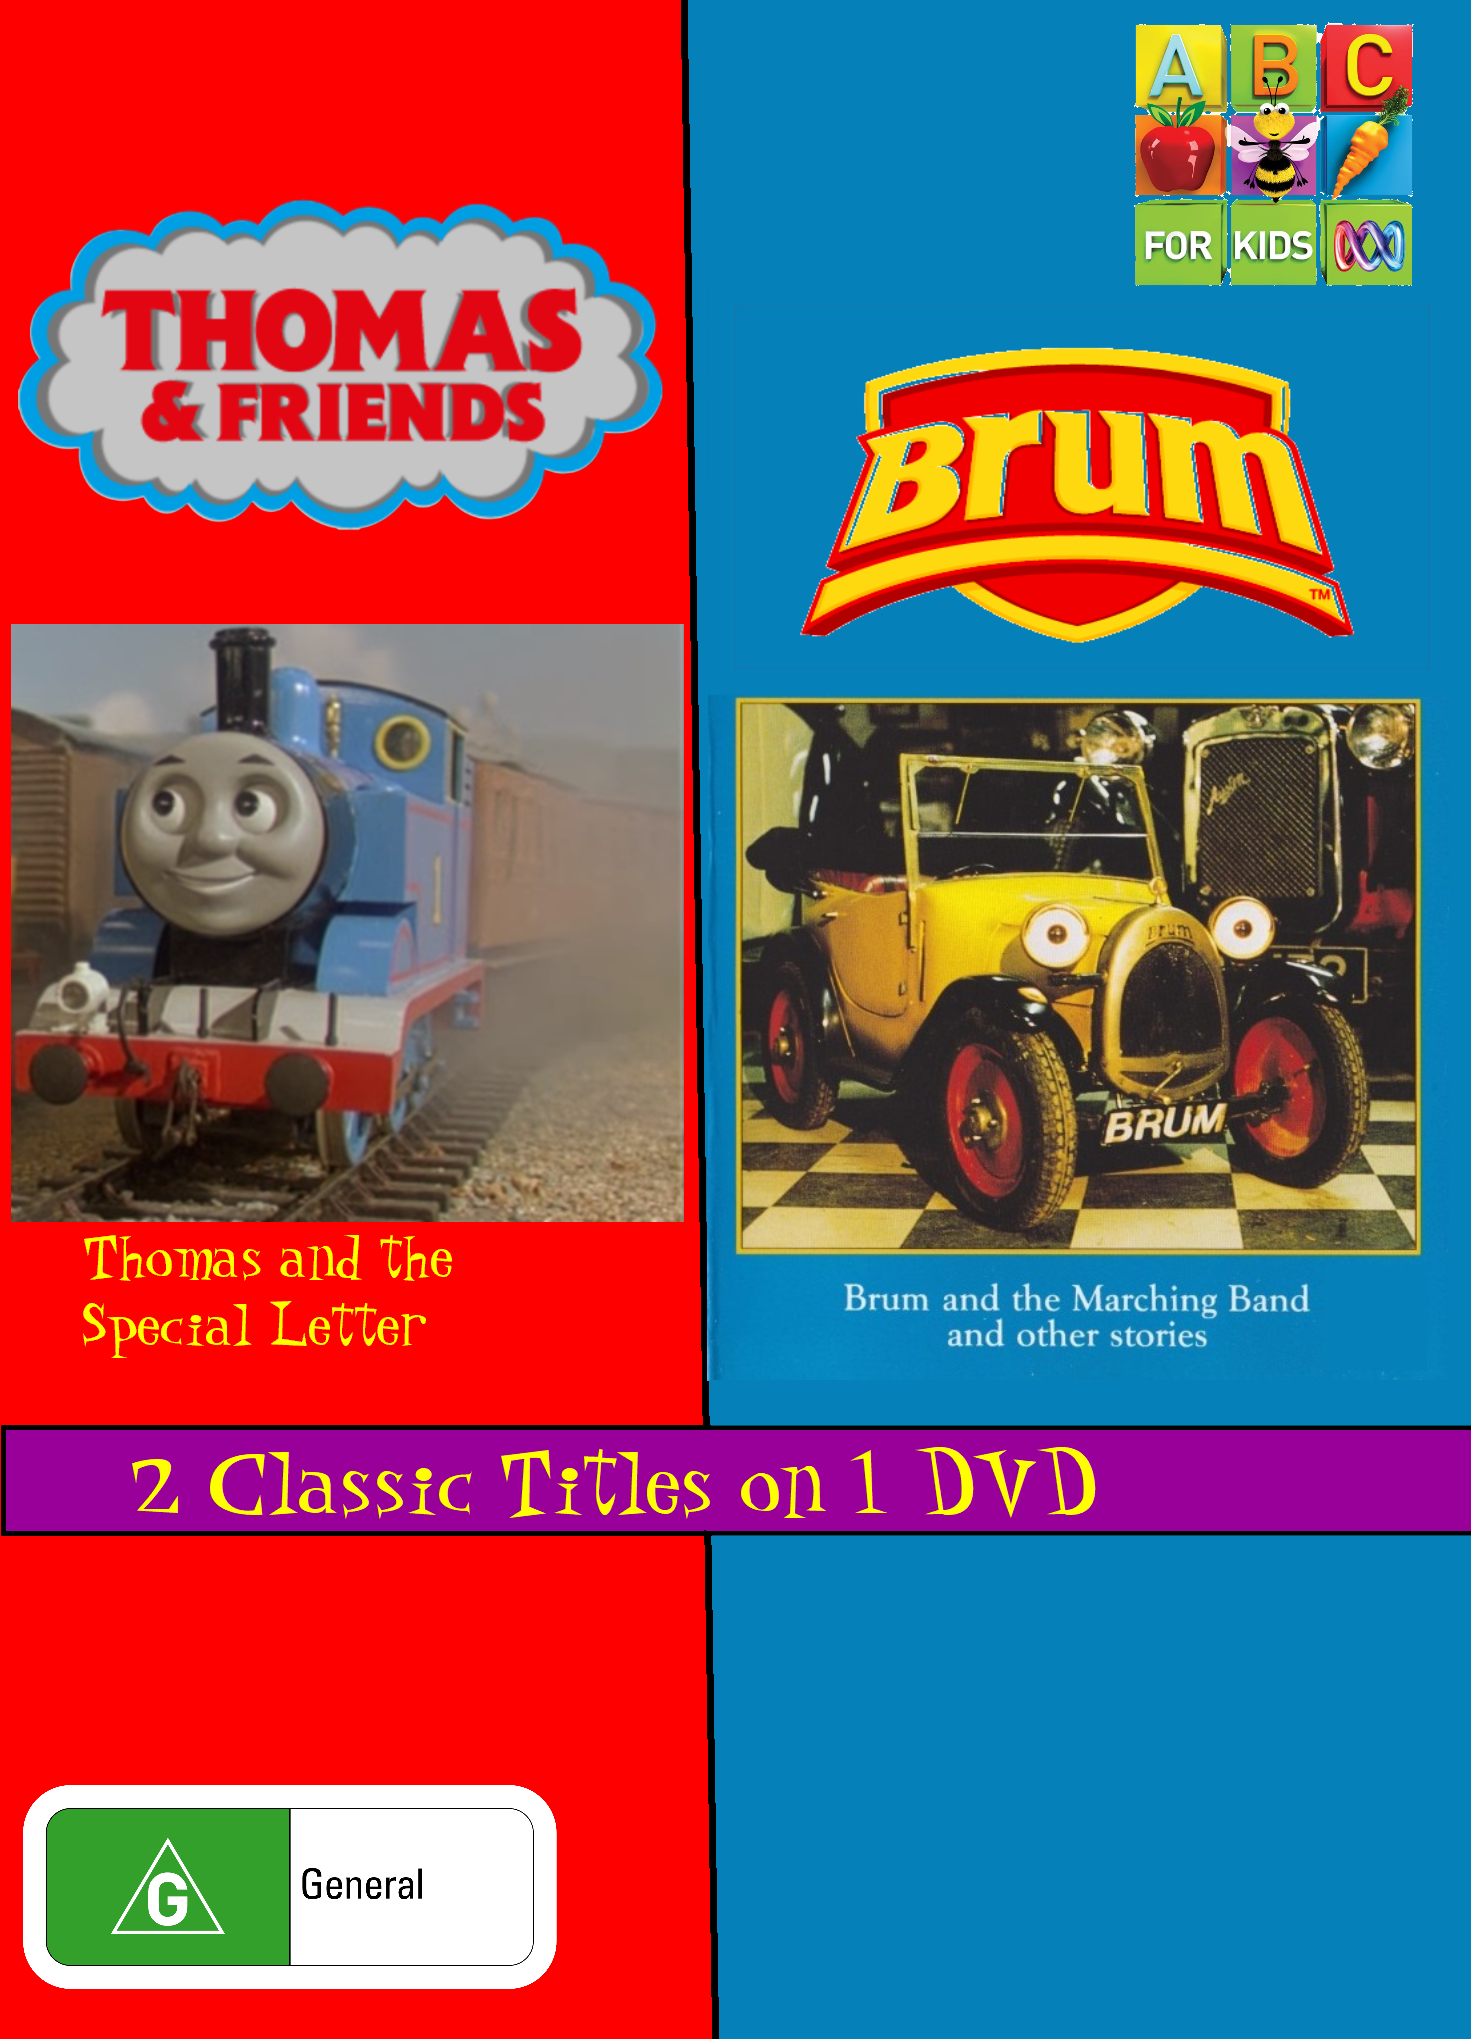 Thomas & Friends and Brum: Thomas & The Special Letter/Brum & the Marching Band (video)